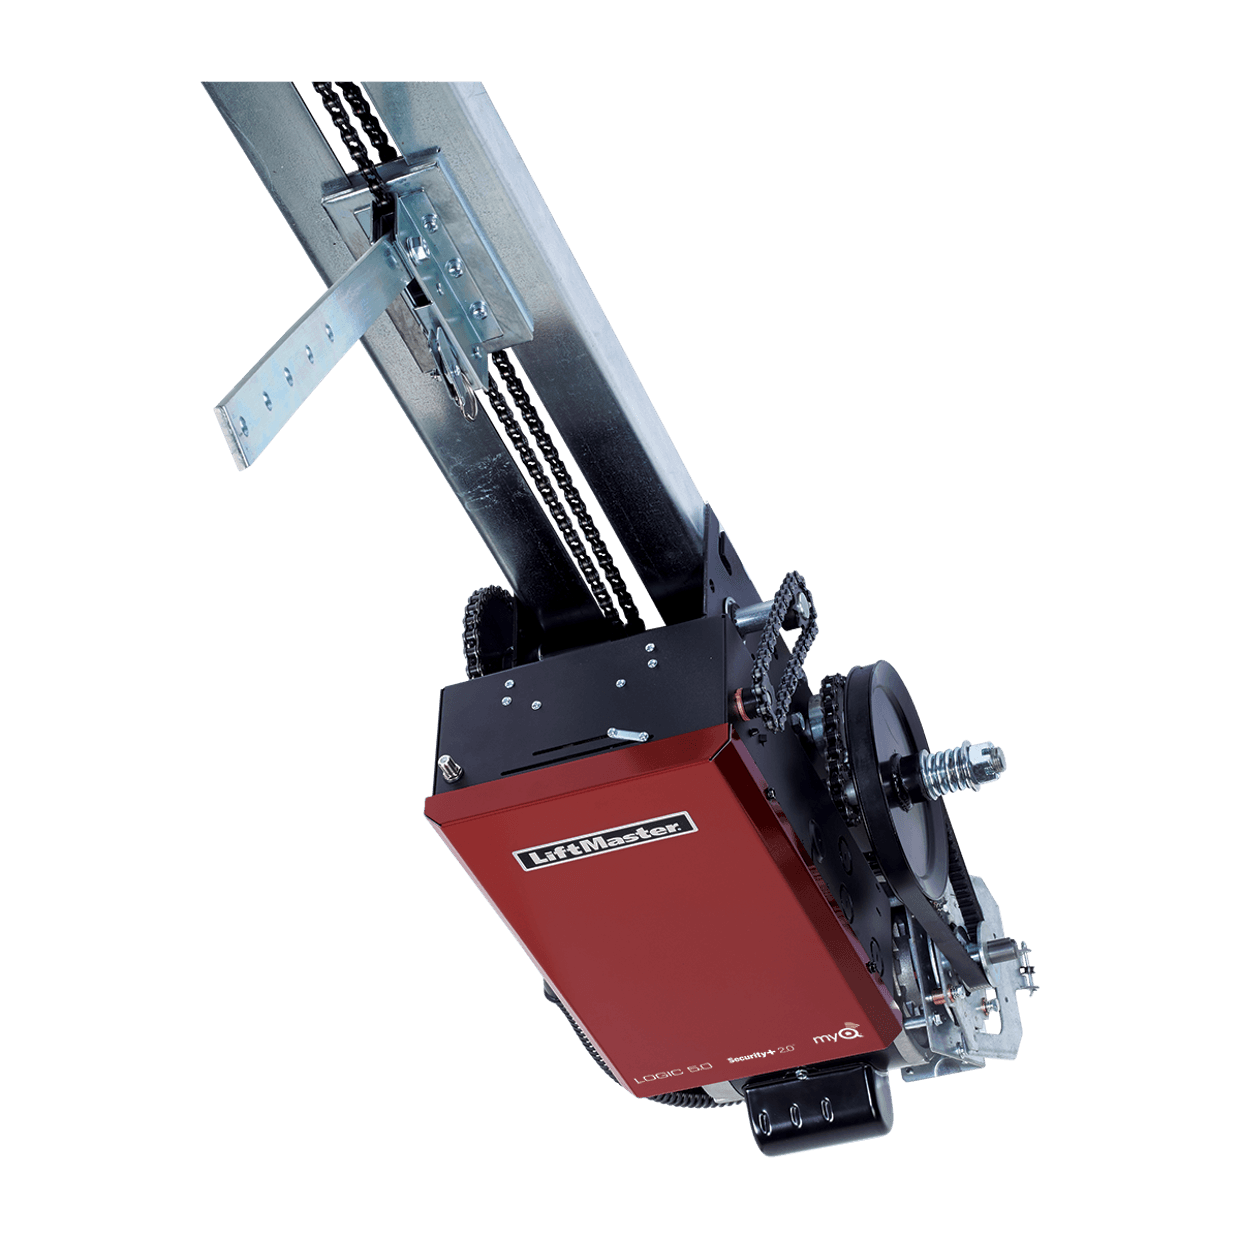 HCT- Heavy-Duty High-Cycle Trolley Commercial Door Operator